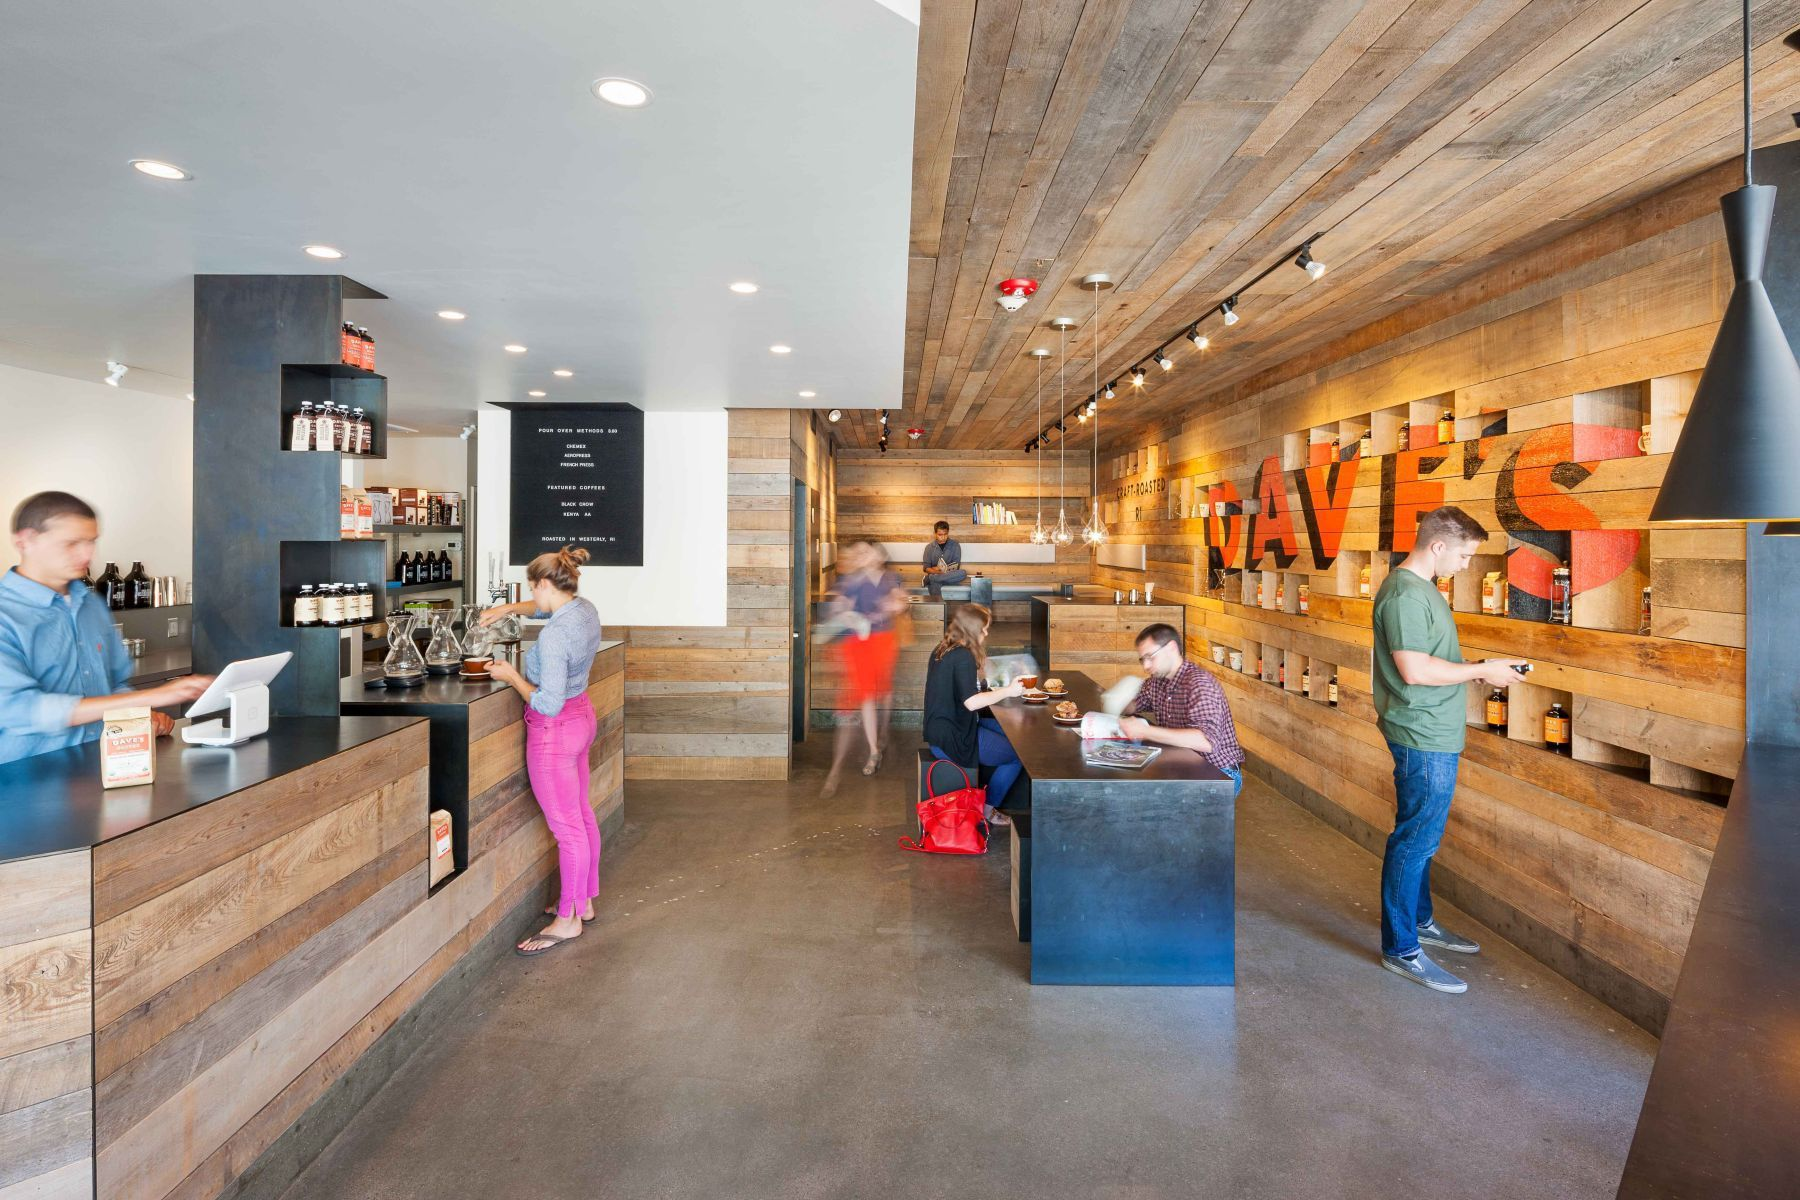 The challenge was to create a second location for Dave's Coffee in Providence that would embody and develop a design ...